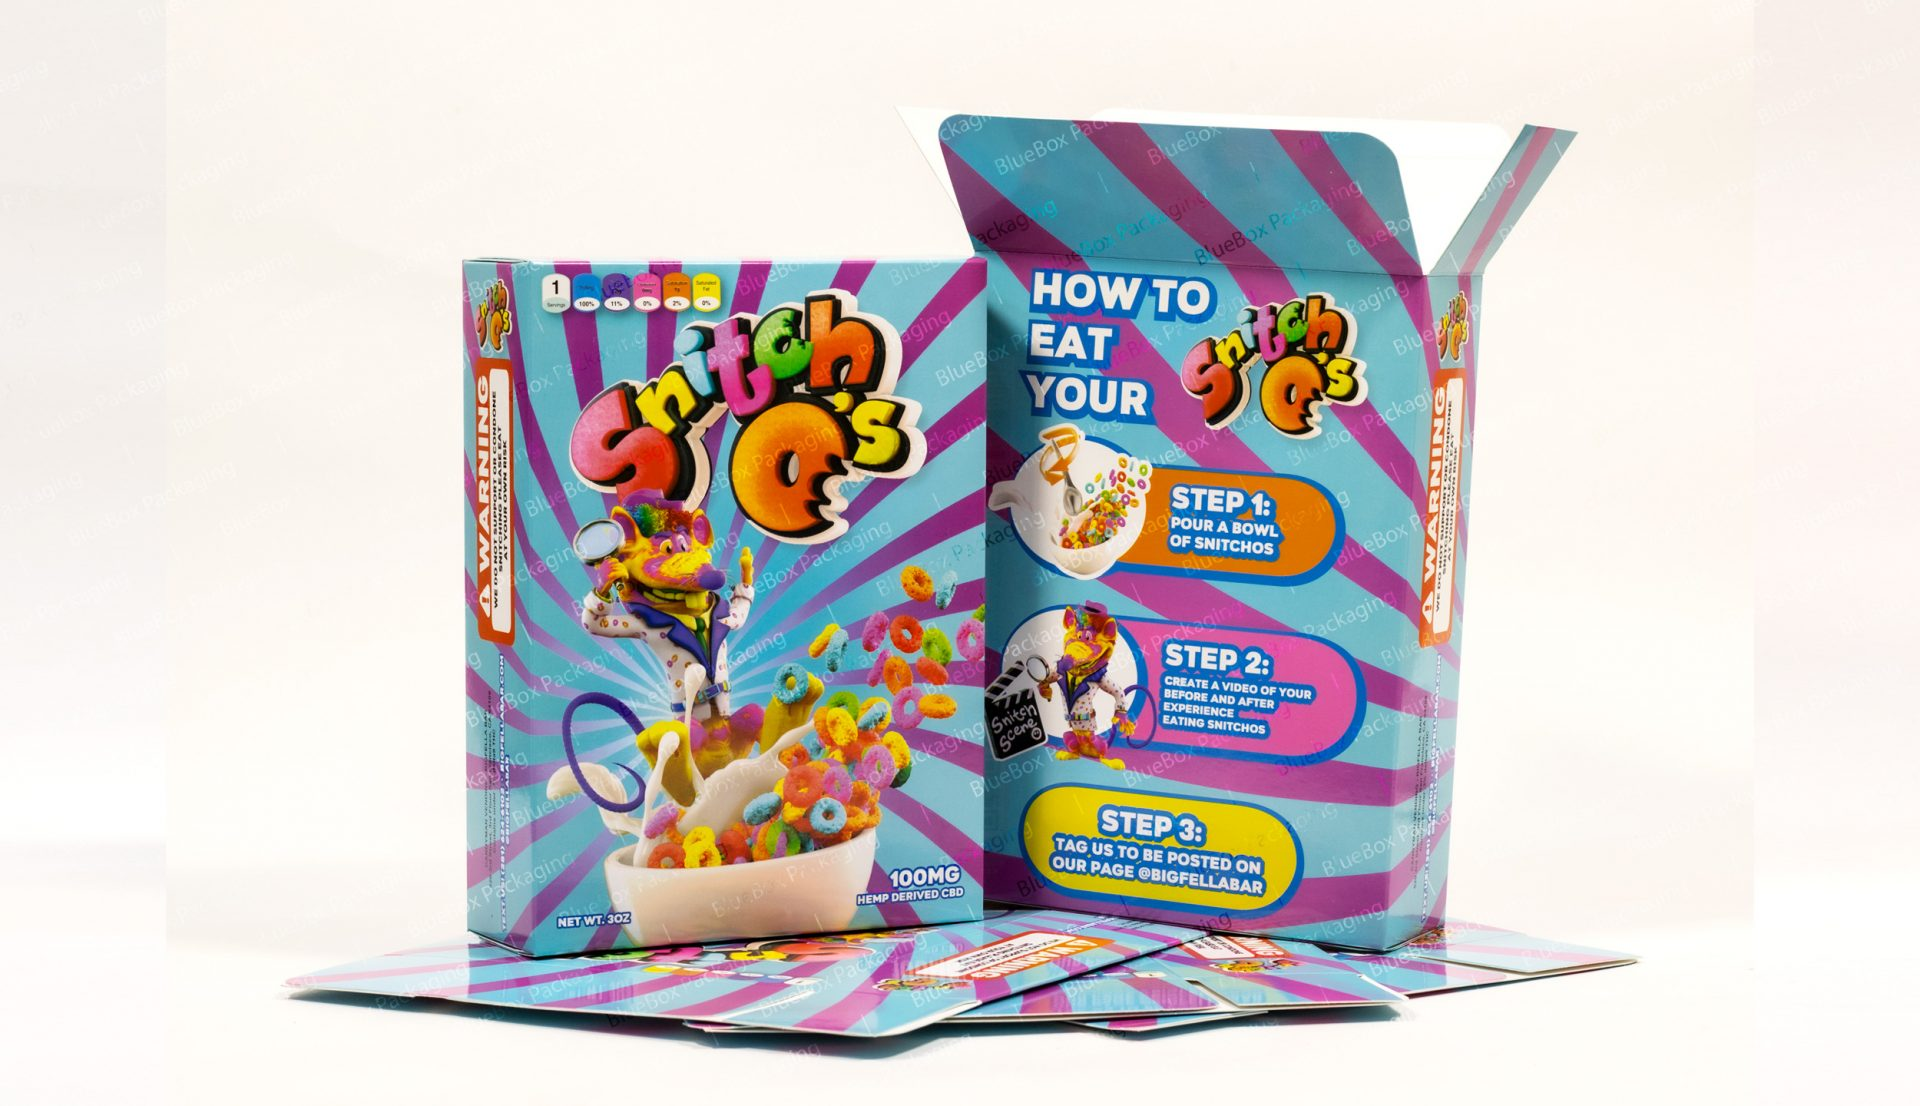 cardboard cereal boxes